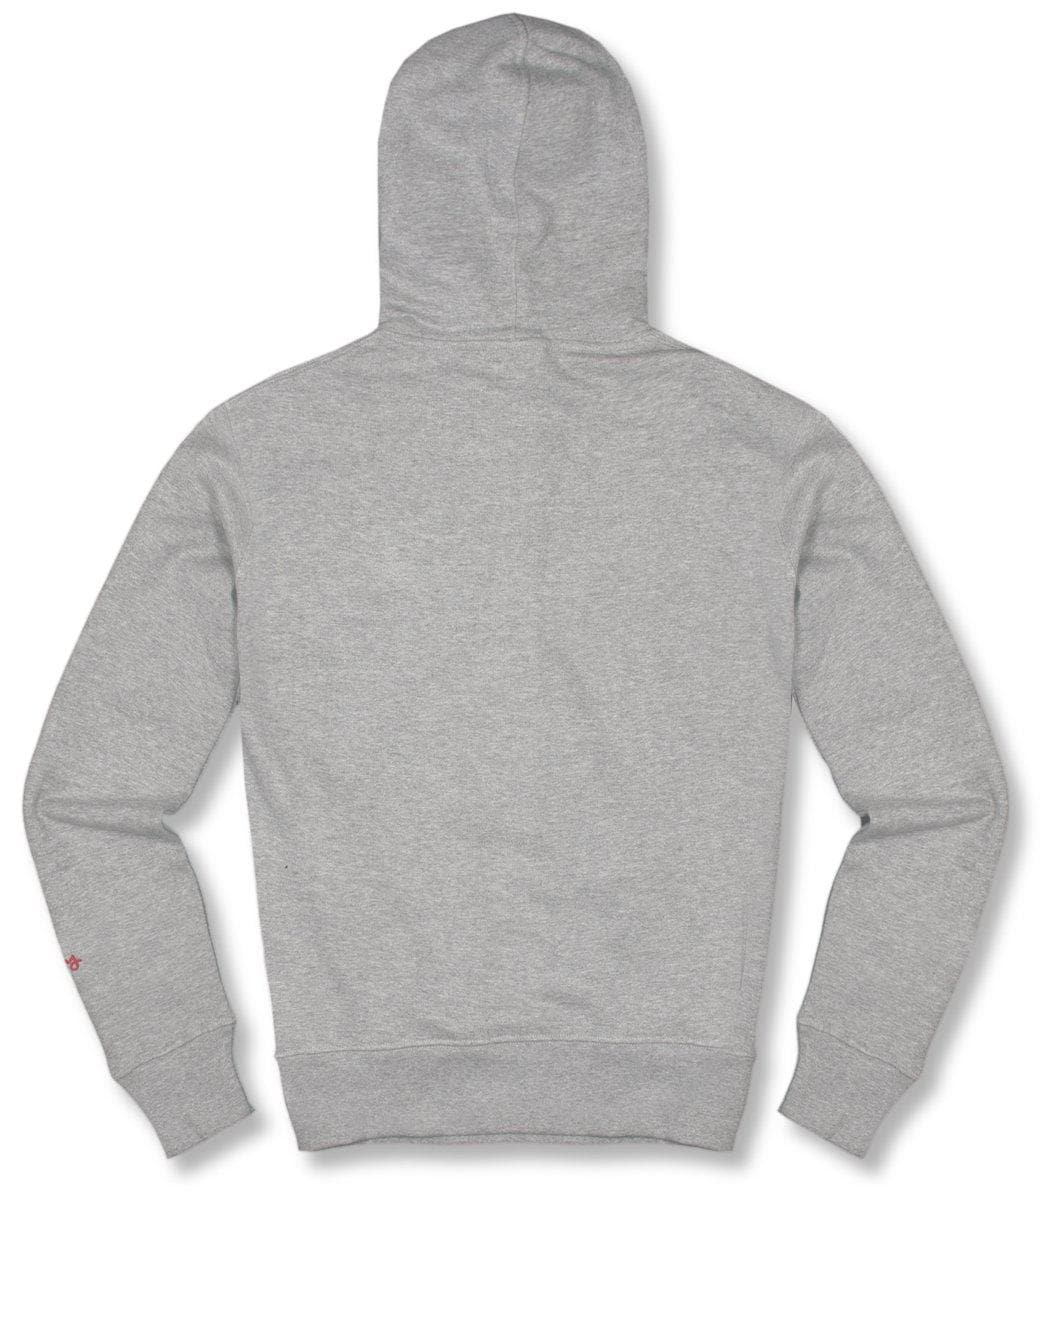 GREY COMBO MIX HOODY